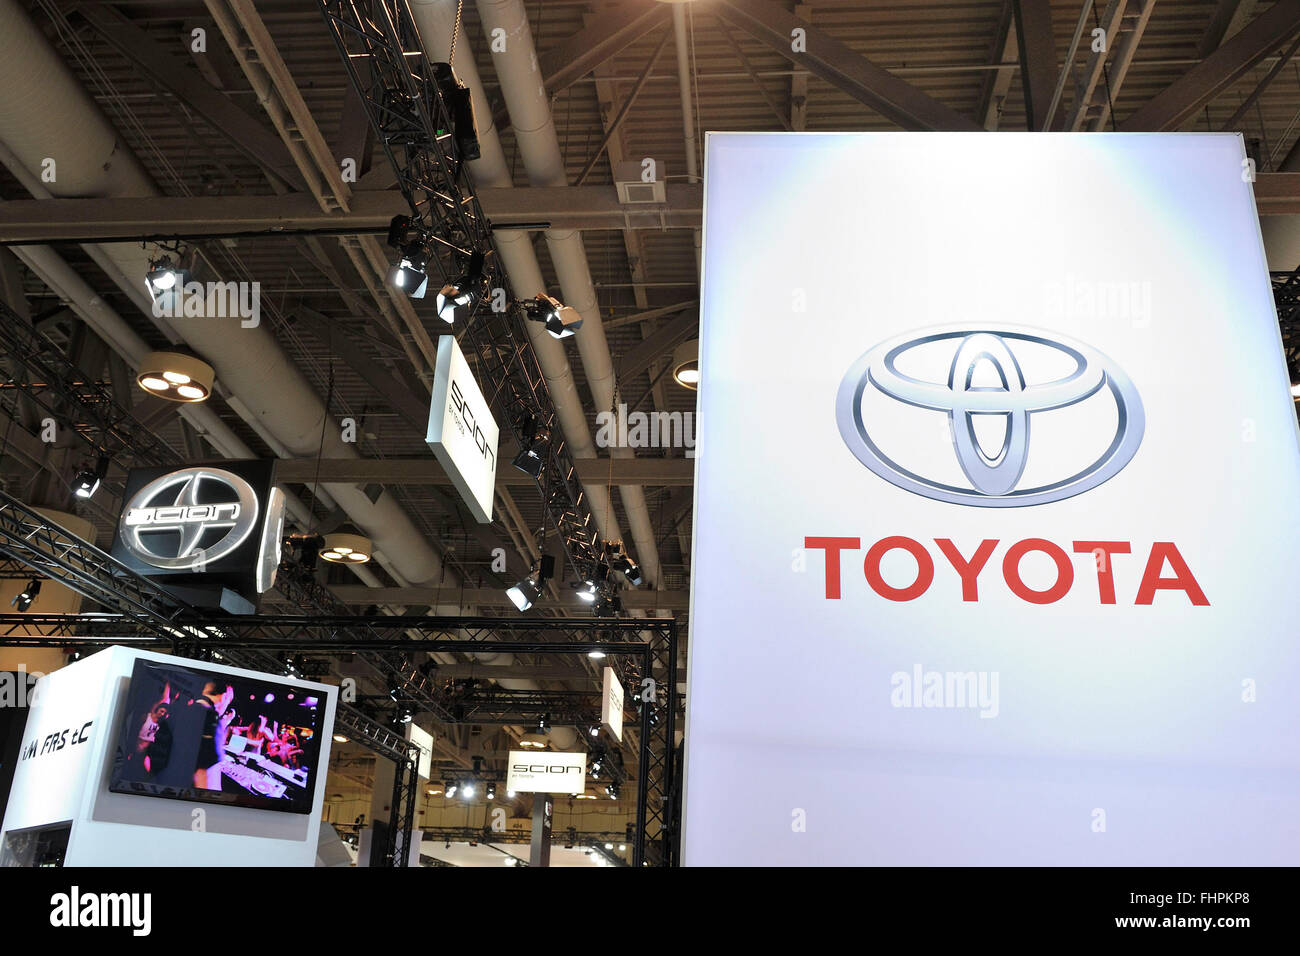 Signage of Toyota and SCION at the 2016 Toronto Autoshow at the Toronto Metro Convention Centre, Toronto, Ontario, - Stock Image